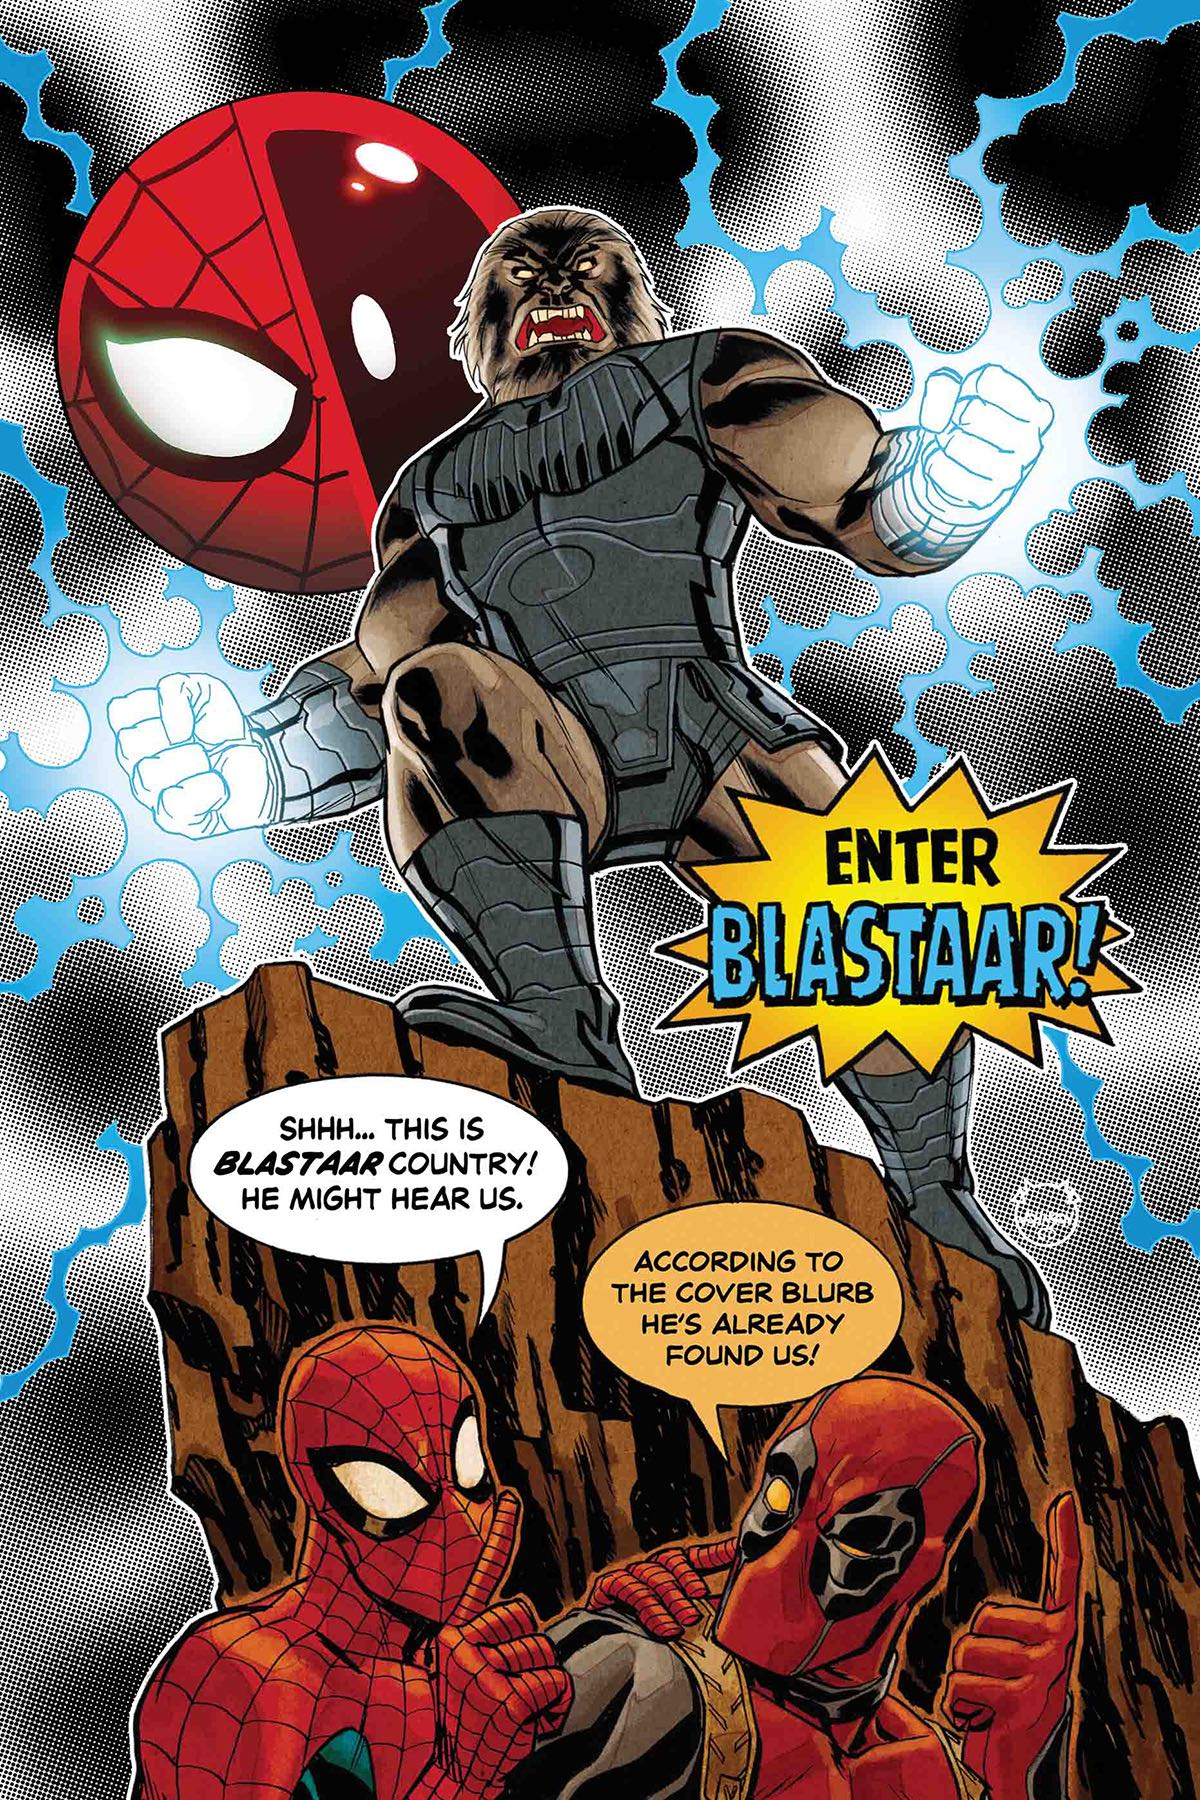 Let's just say Spider-Man and Deadpool aren't not trapped in the Negative Zone.